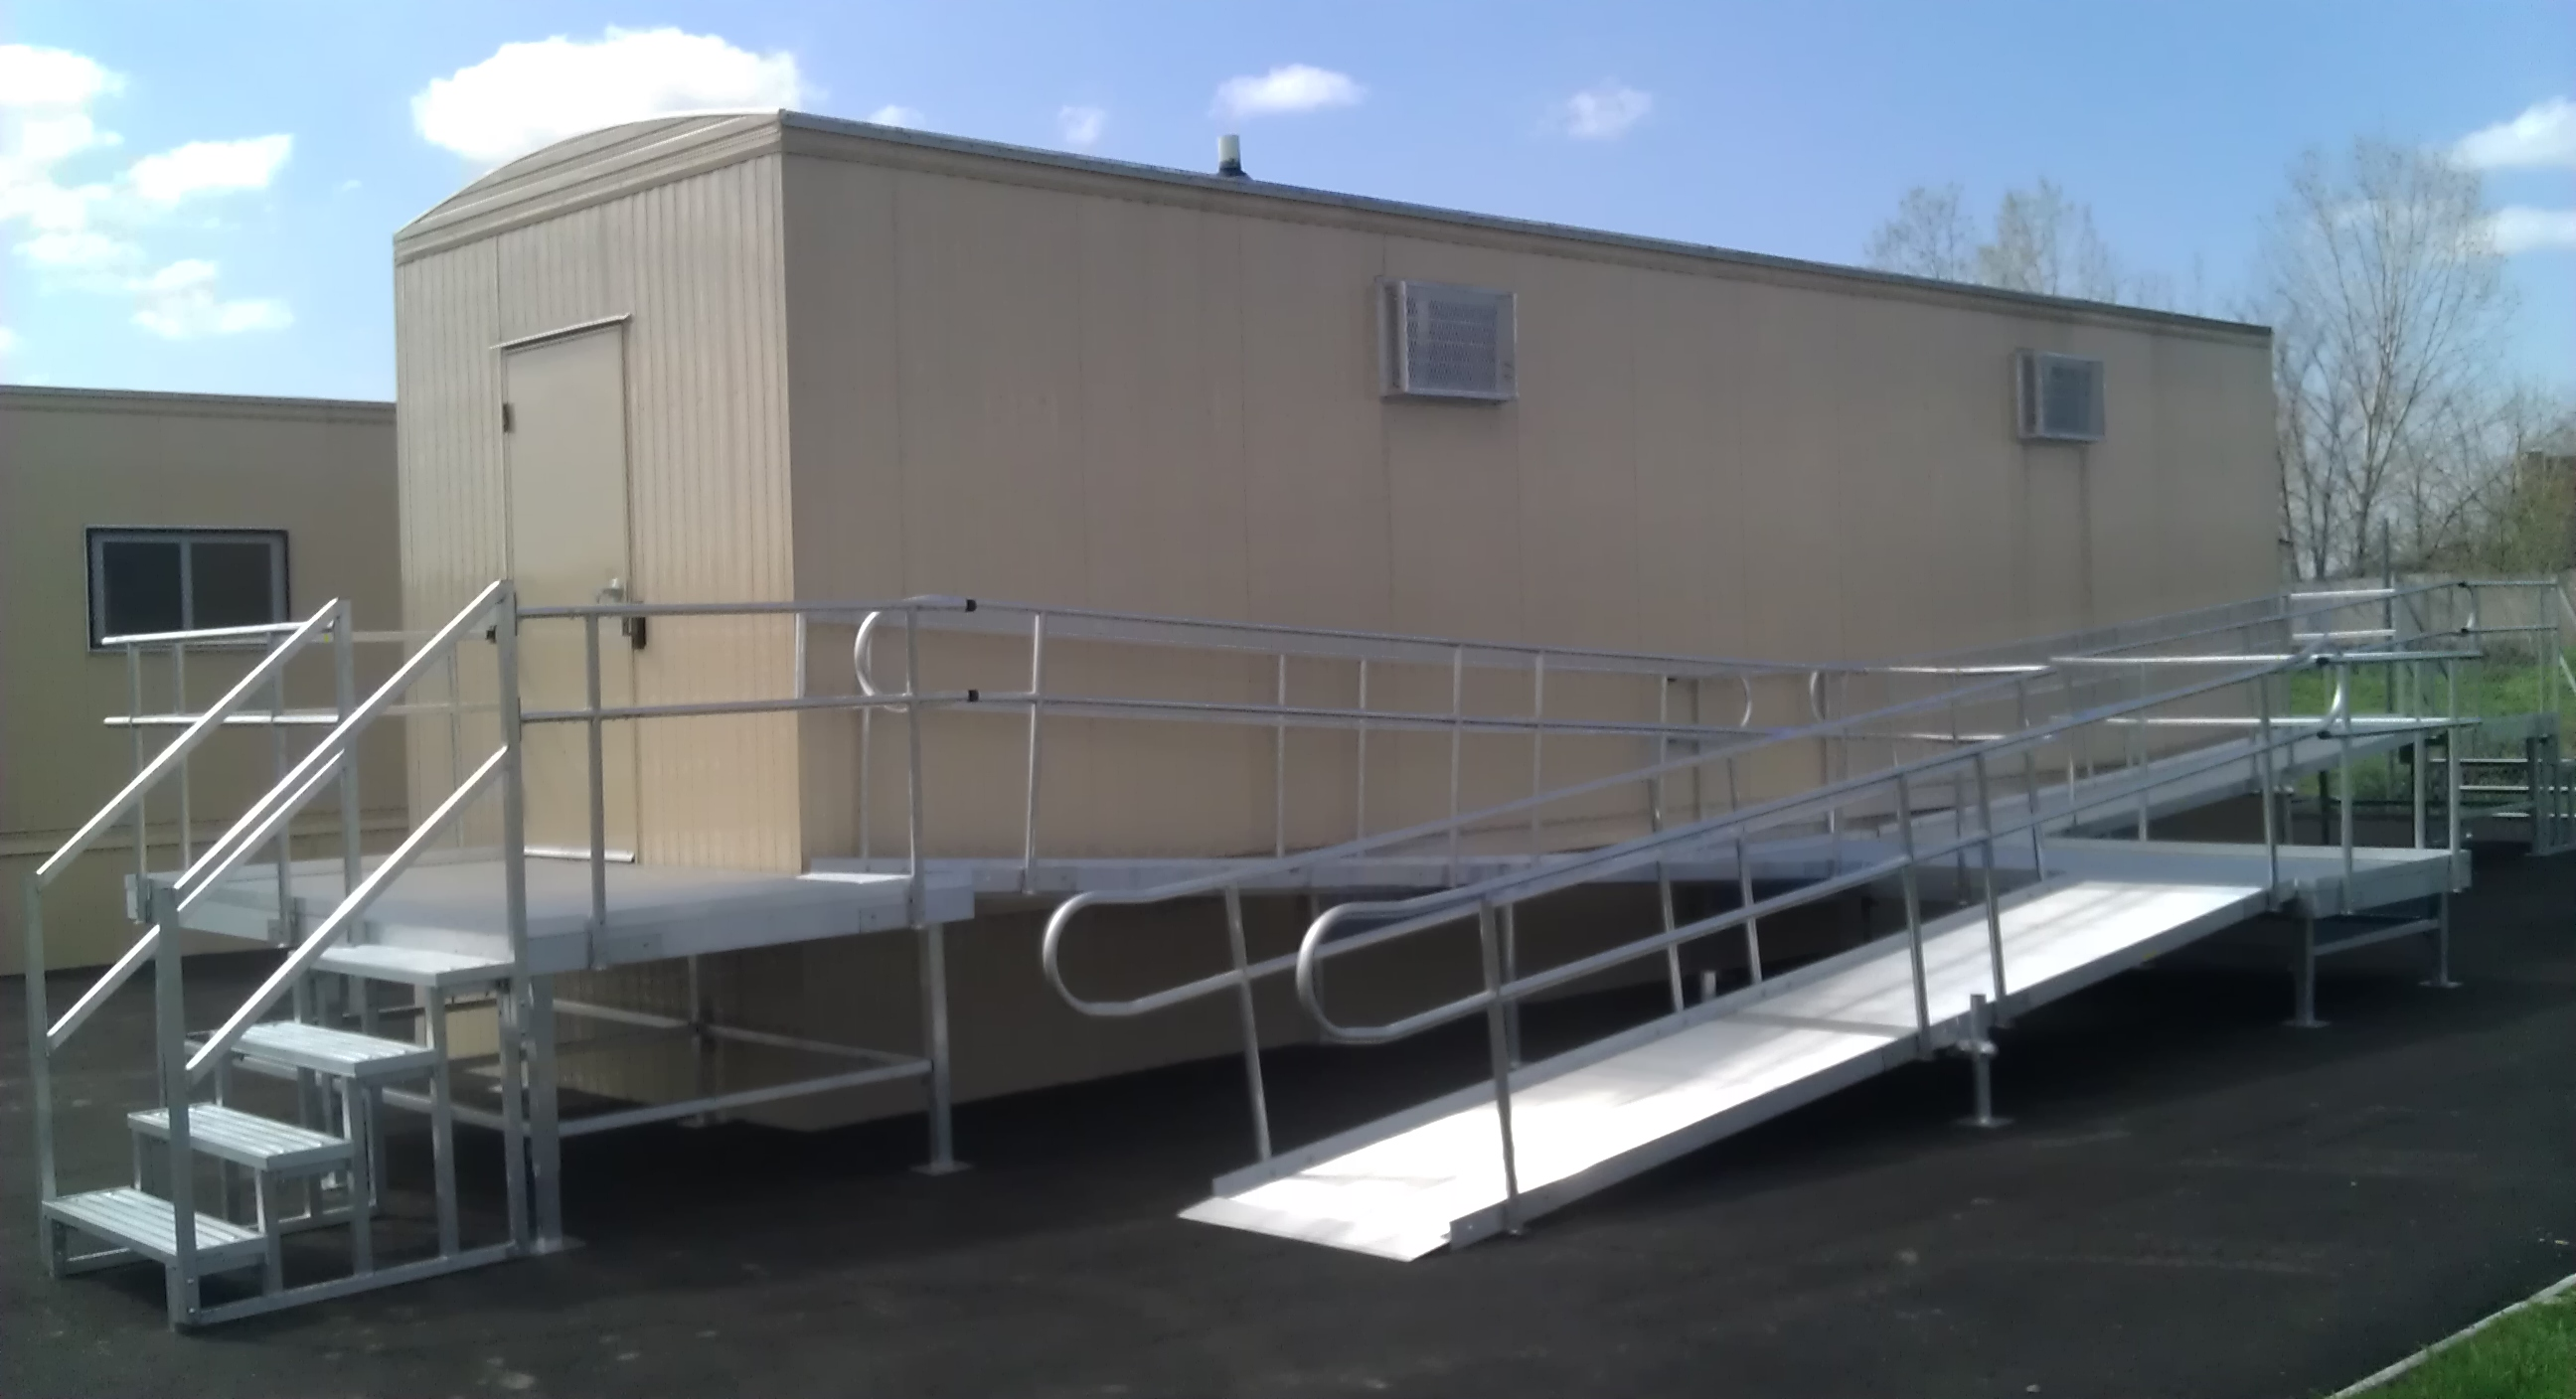 custom office trailers handicap accessible near nyc from mobile on demand